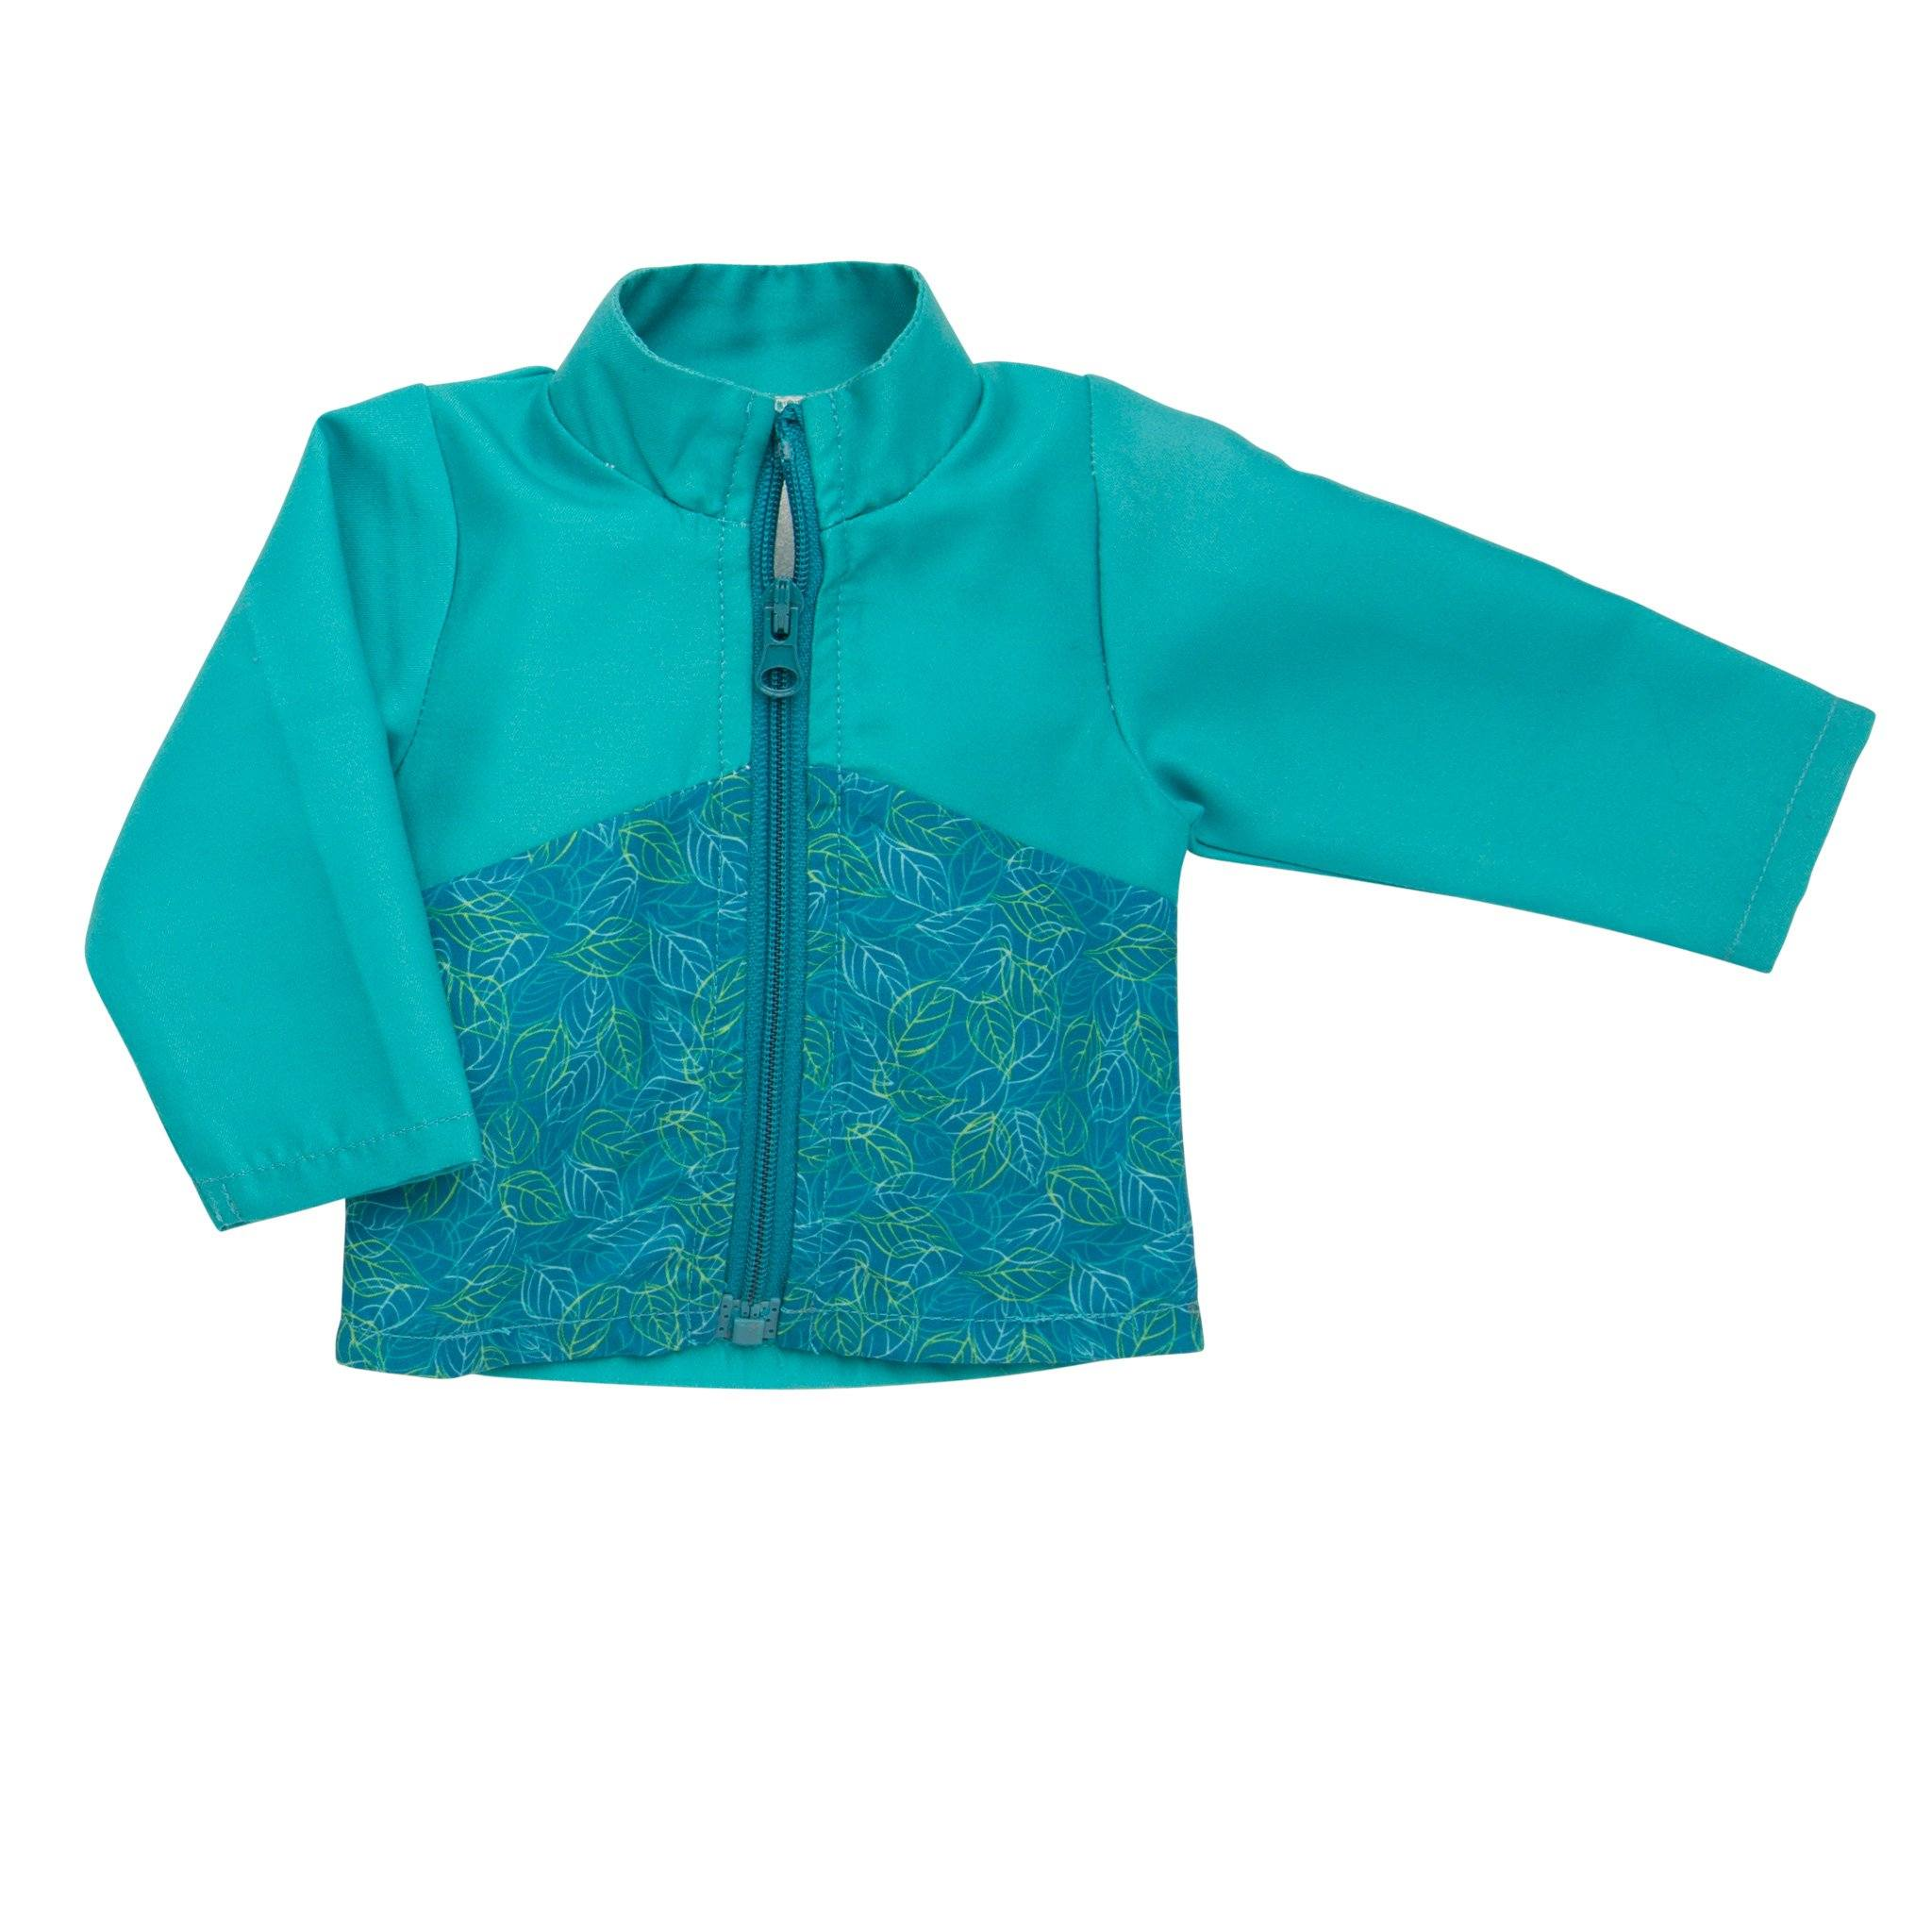 Teal nylon windbreaker with leaf pattern fits all 18 inch dolls.